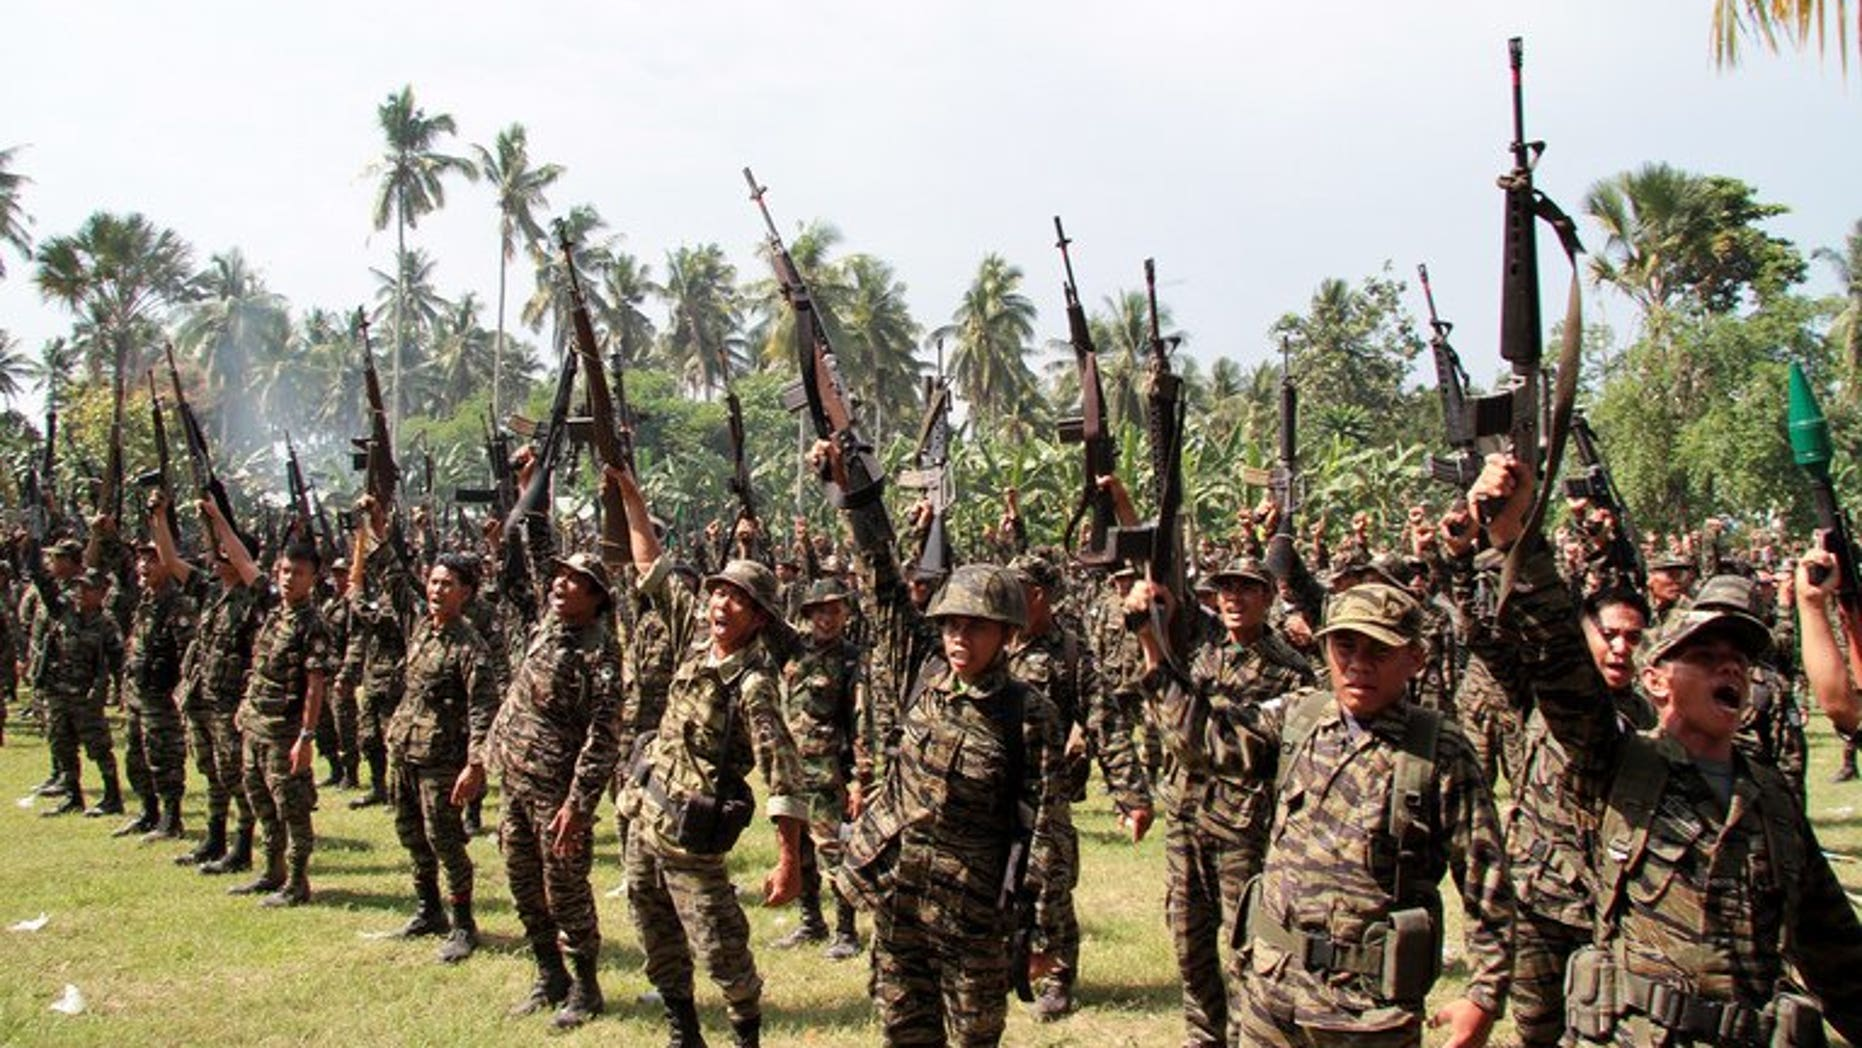 Members of the Moro Islamic Liberation Front hold a ceremony on the southern Philippine island of Mindanao on October 15, 2012. The Philippine government has resolved a key hurdle in peace talks with the Muslim rebels, it announced early Sunday, bringing it closer to ending an insurgency that has claimed tens of thousands of lives.